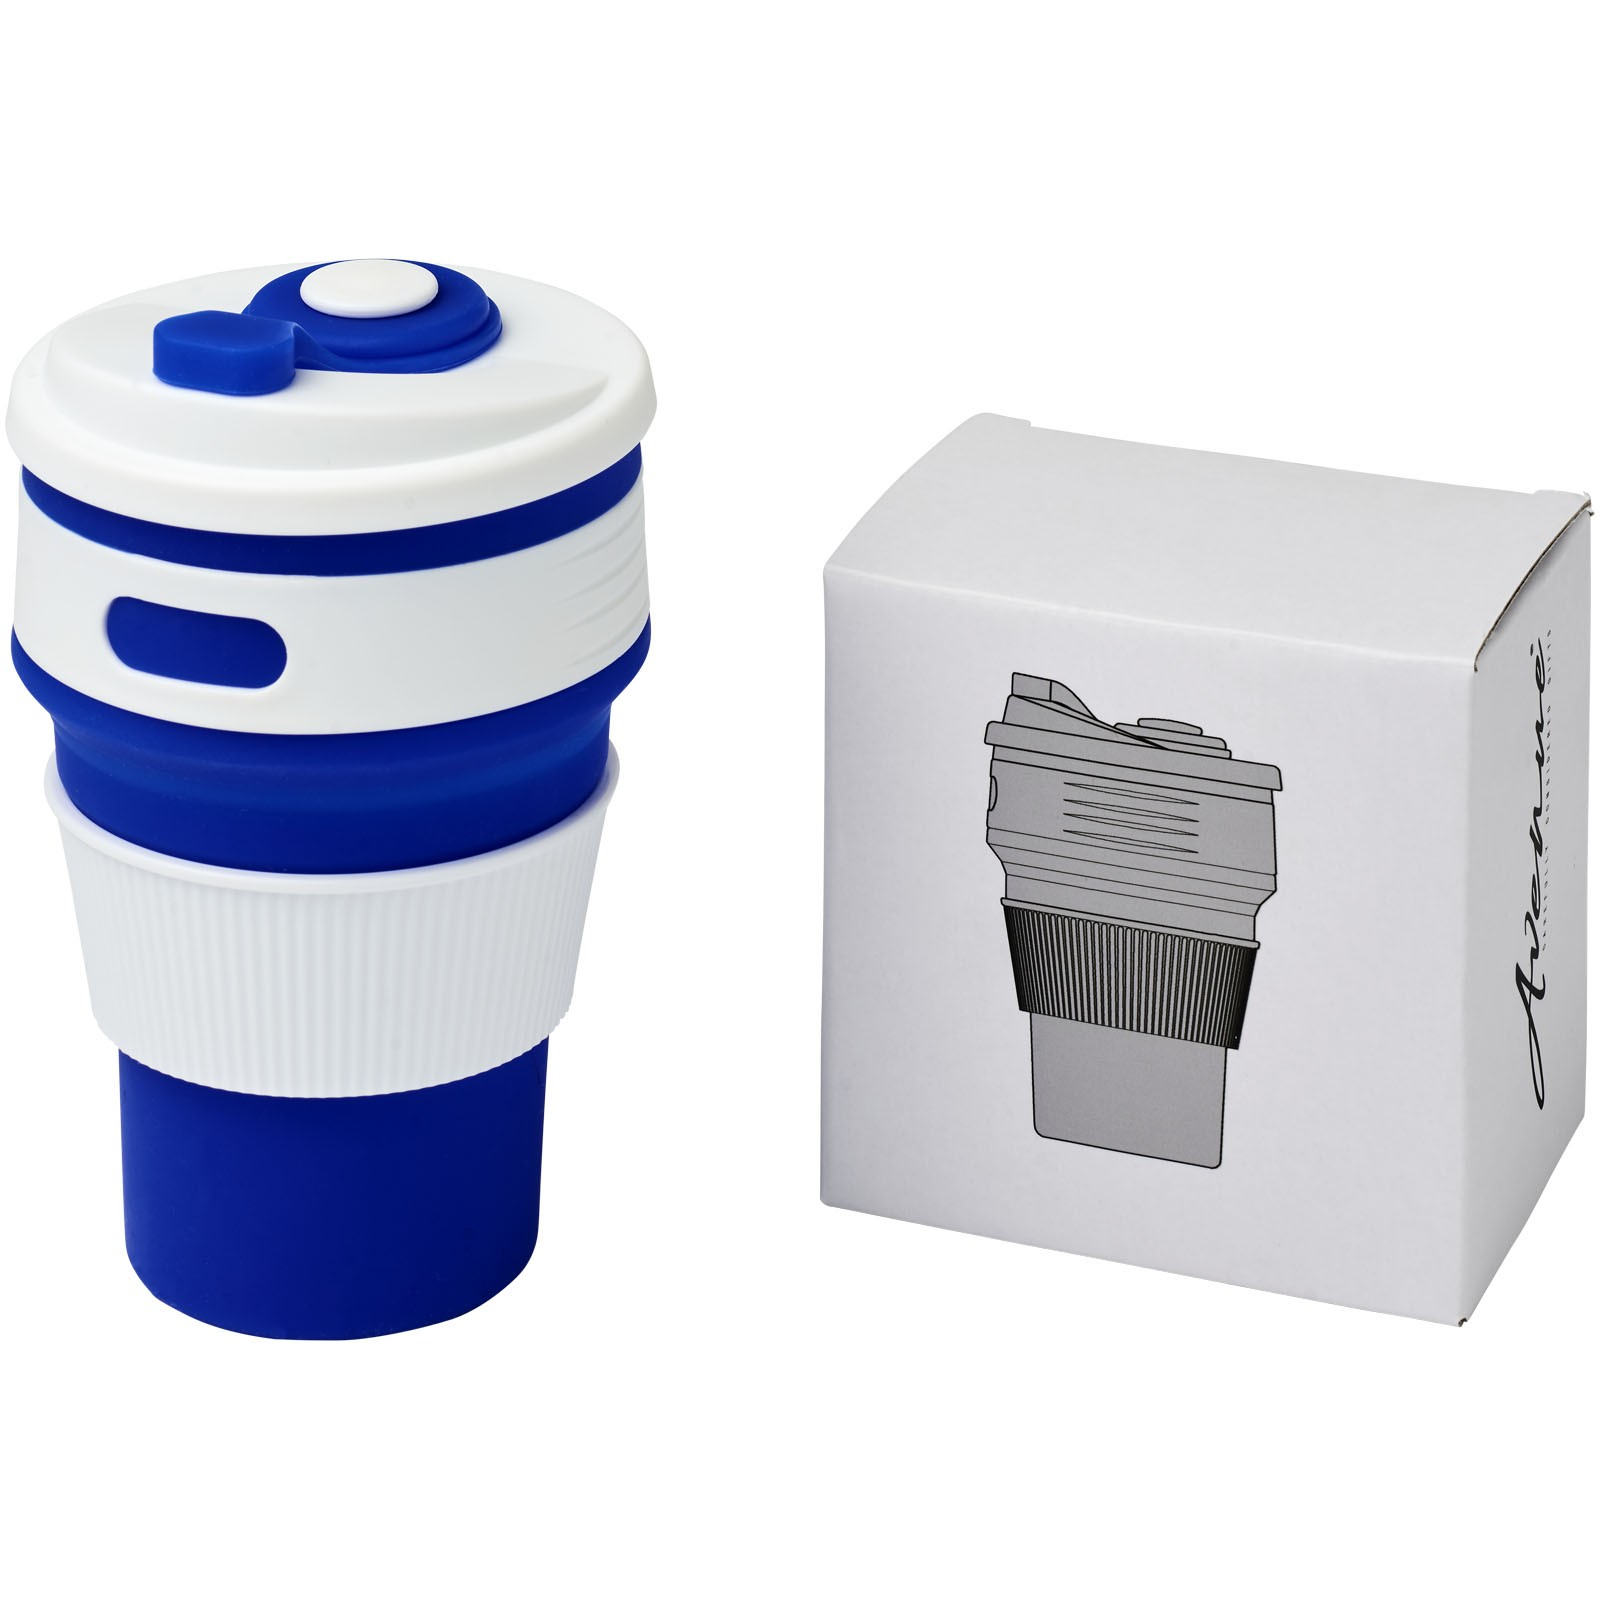 Cora 350 ml collapsable tumbler - Blue